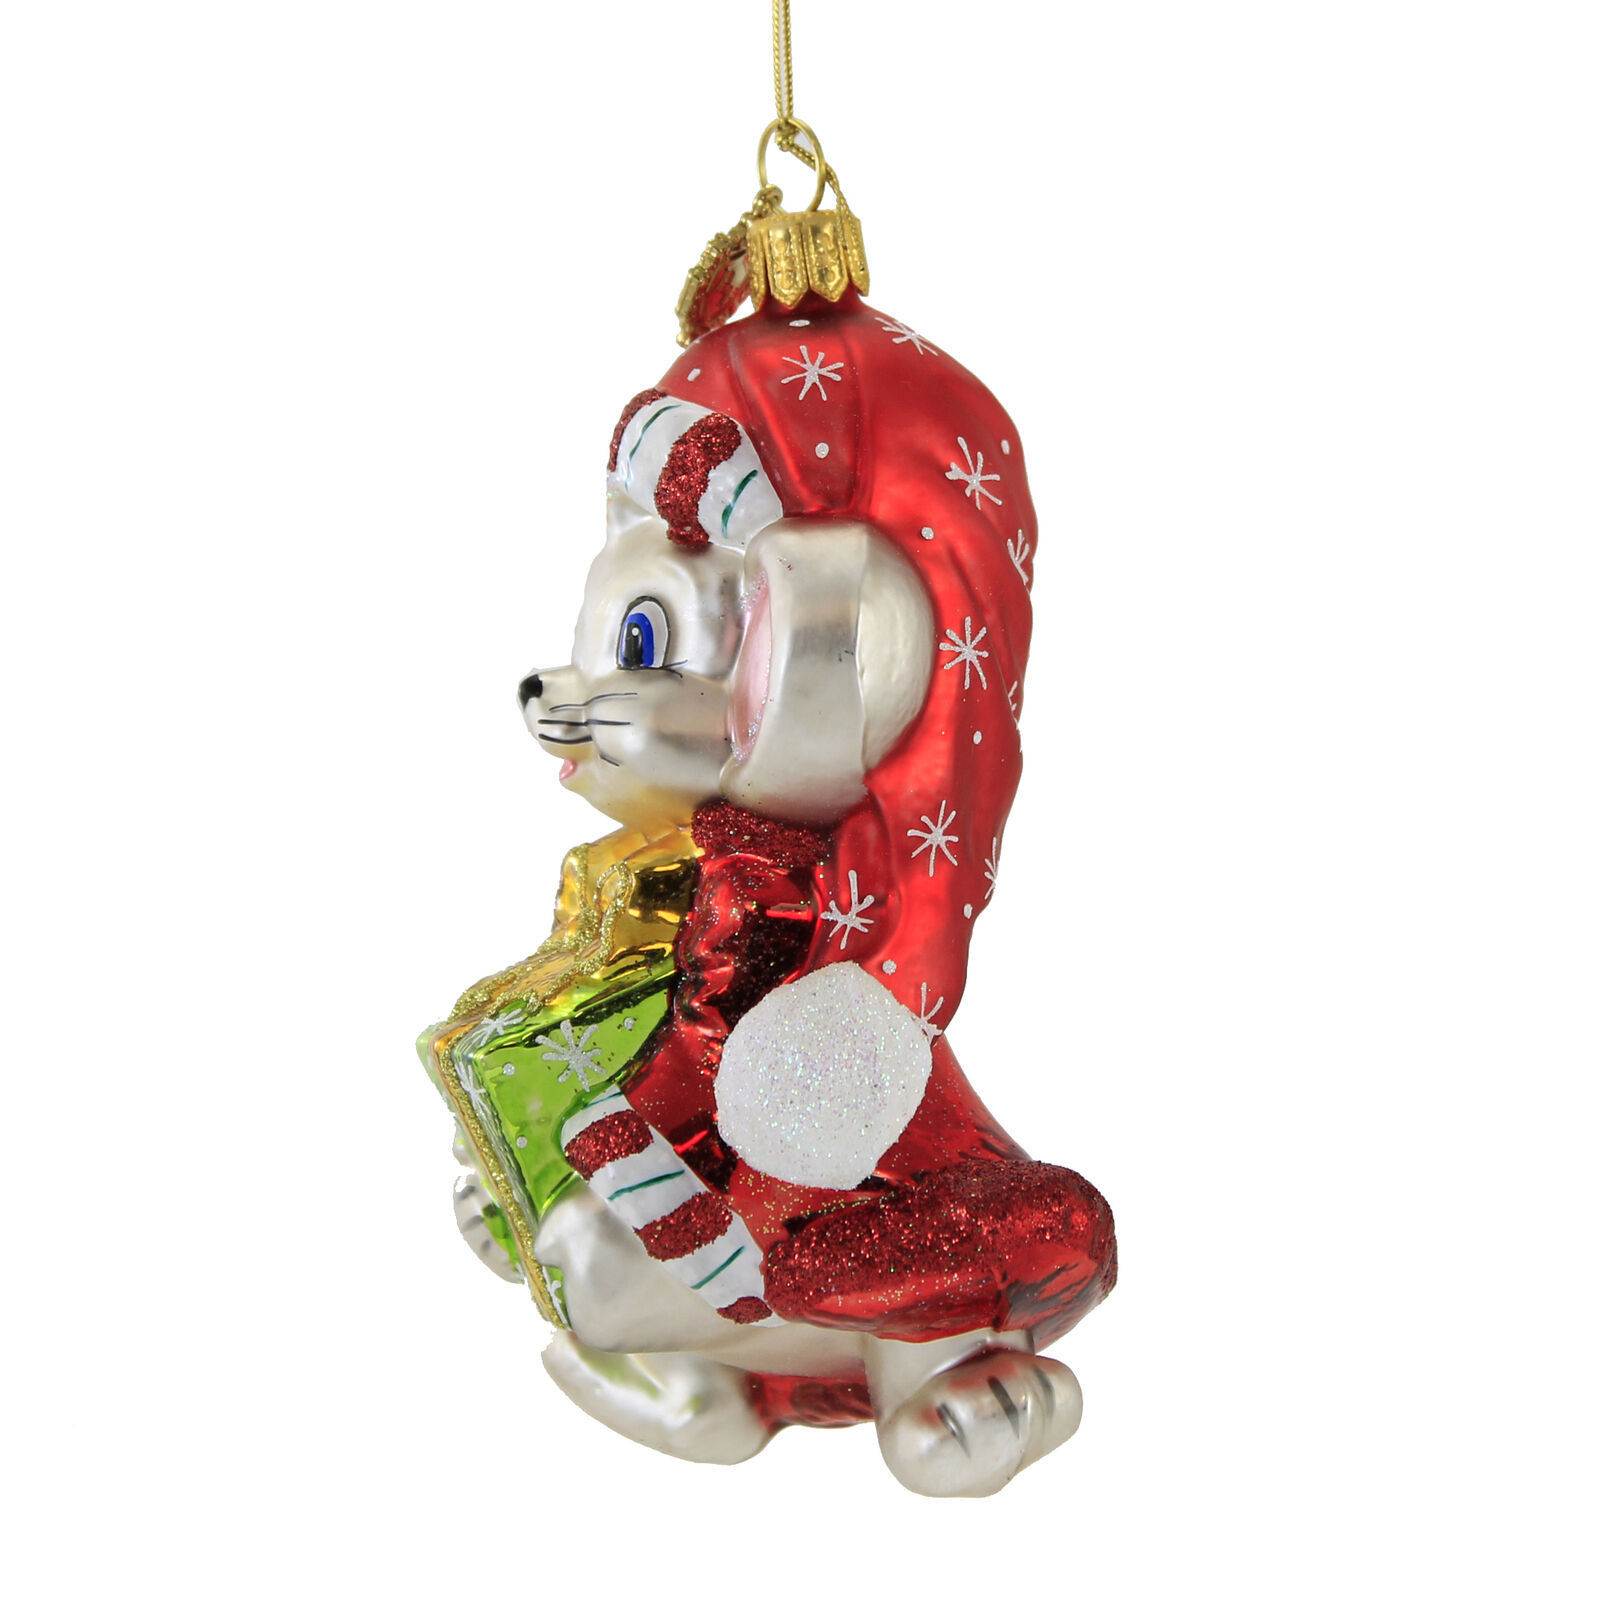 Christmas Mouse Ornament by Huras Family